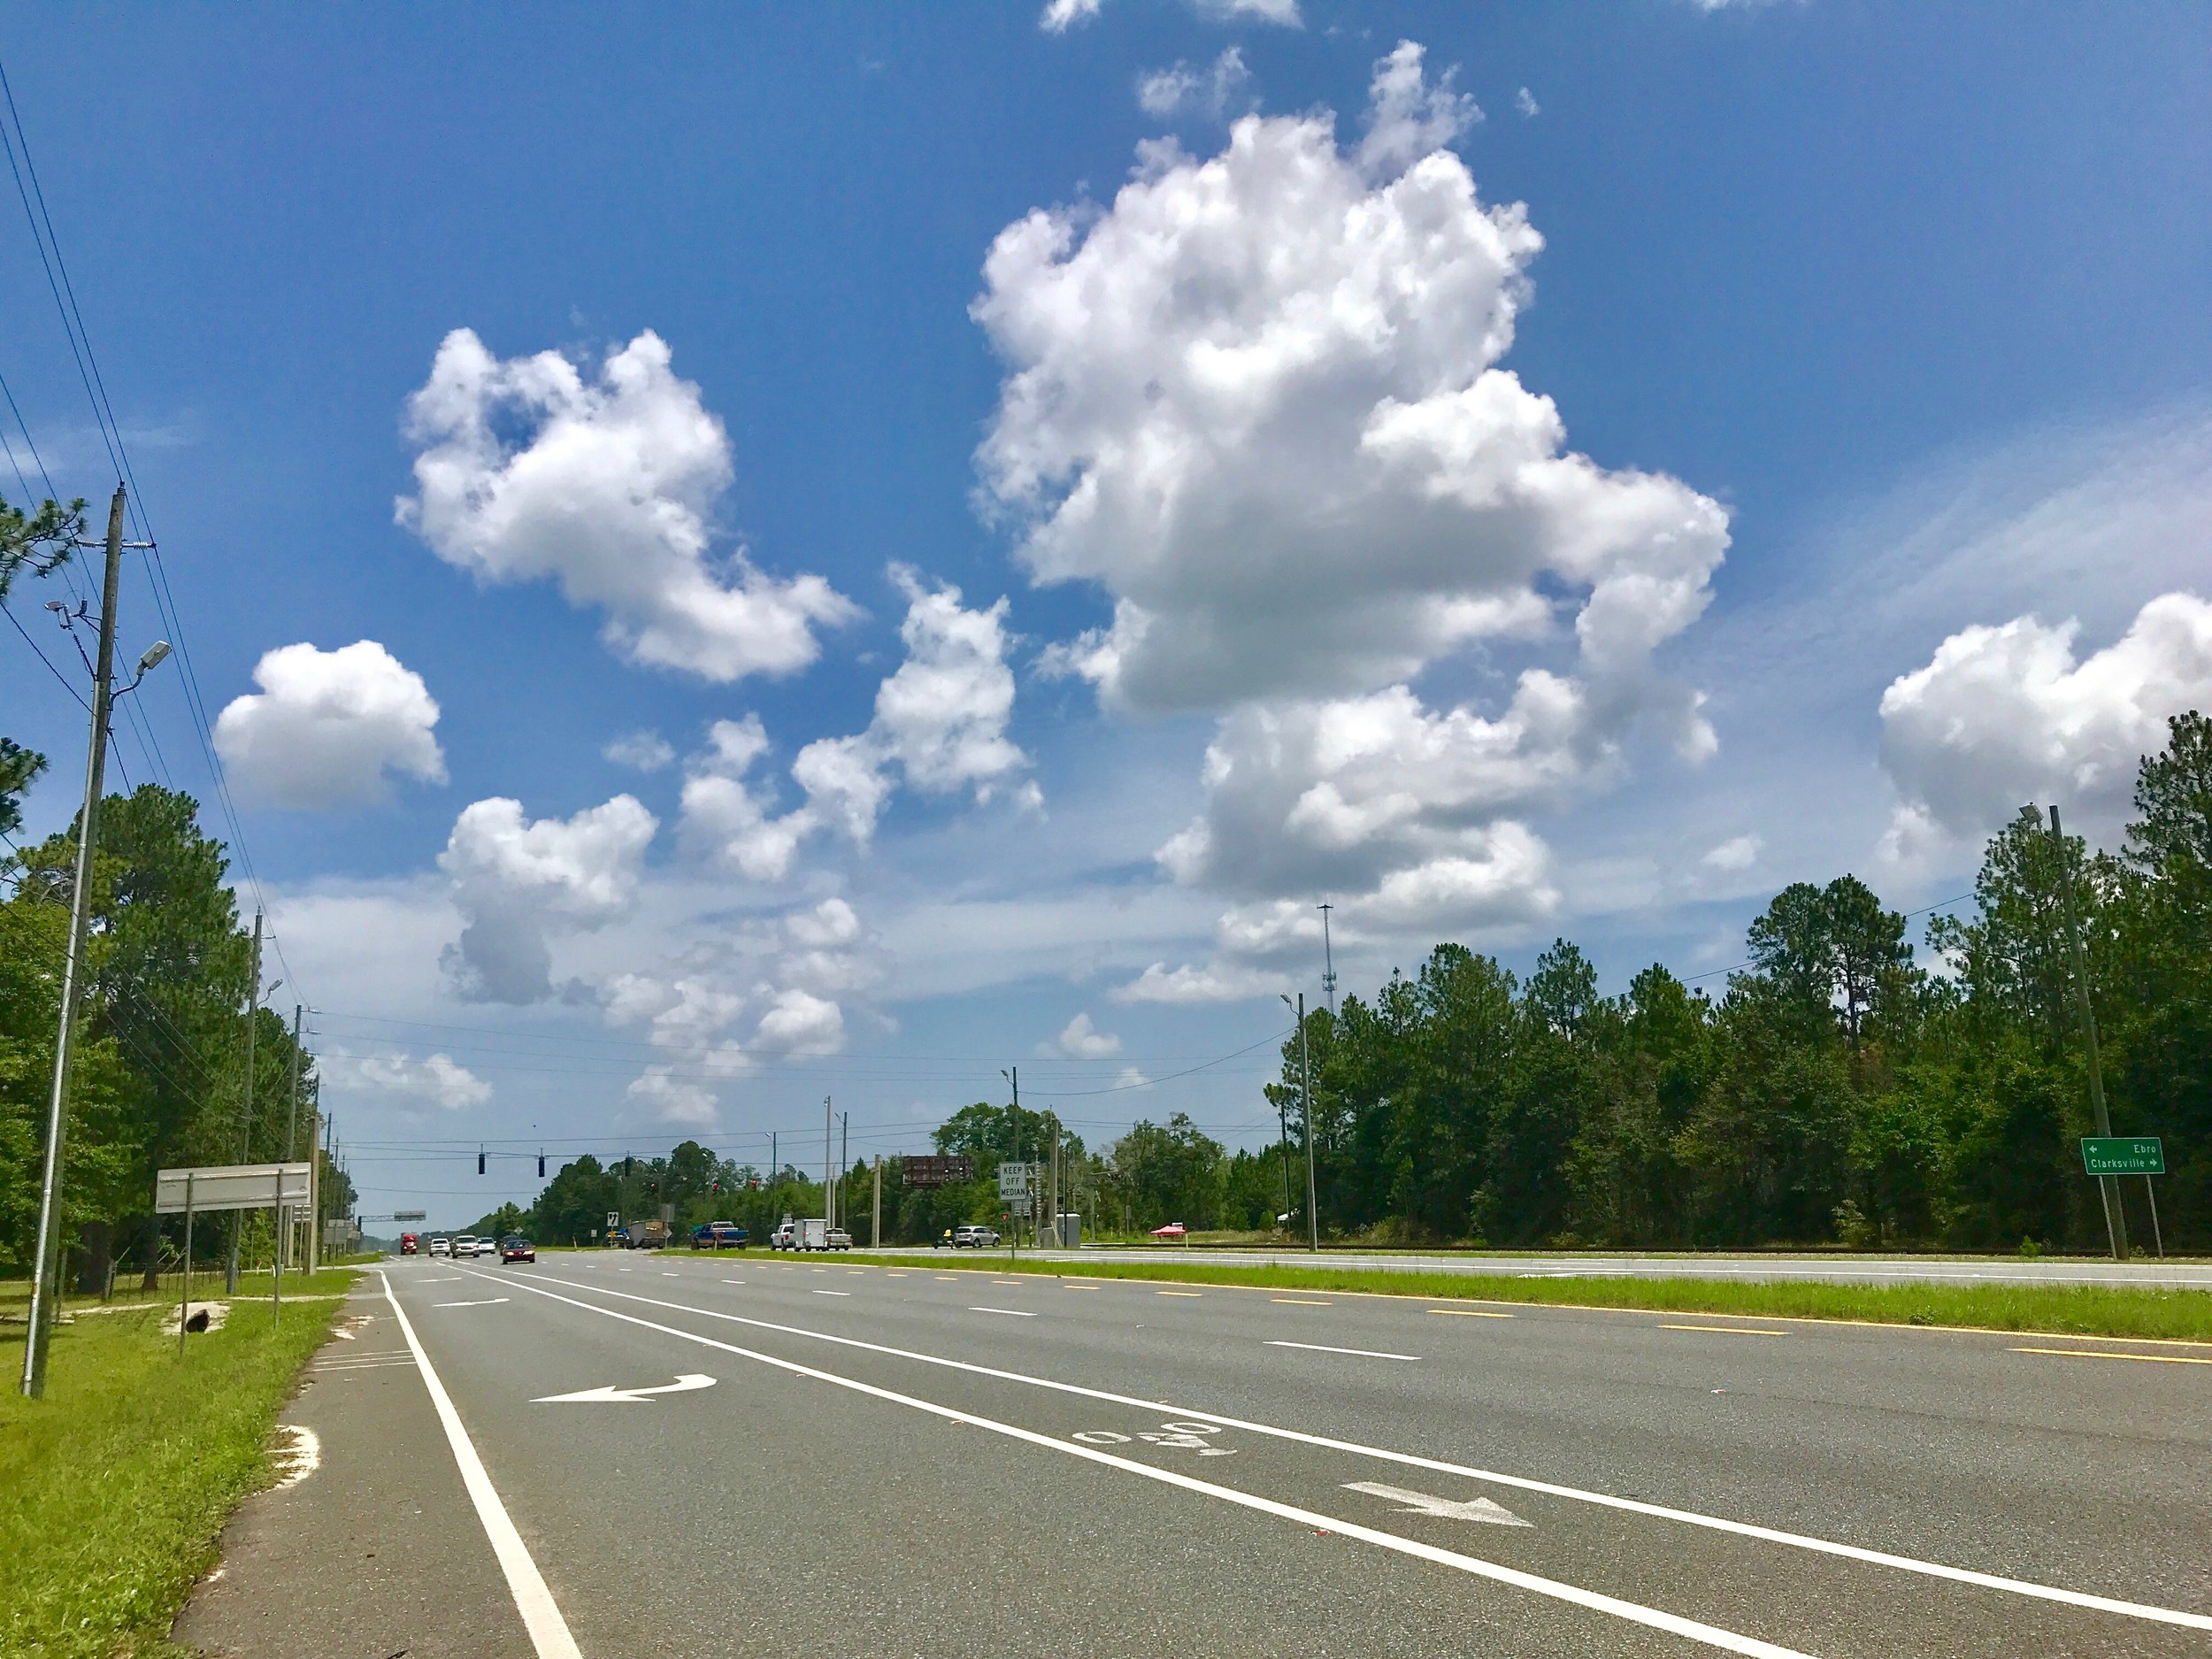 One of the places in Florida where there are no taxis or ride share drivers.